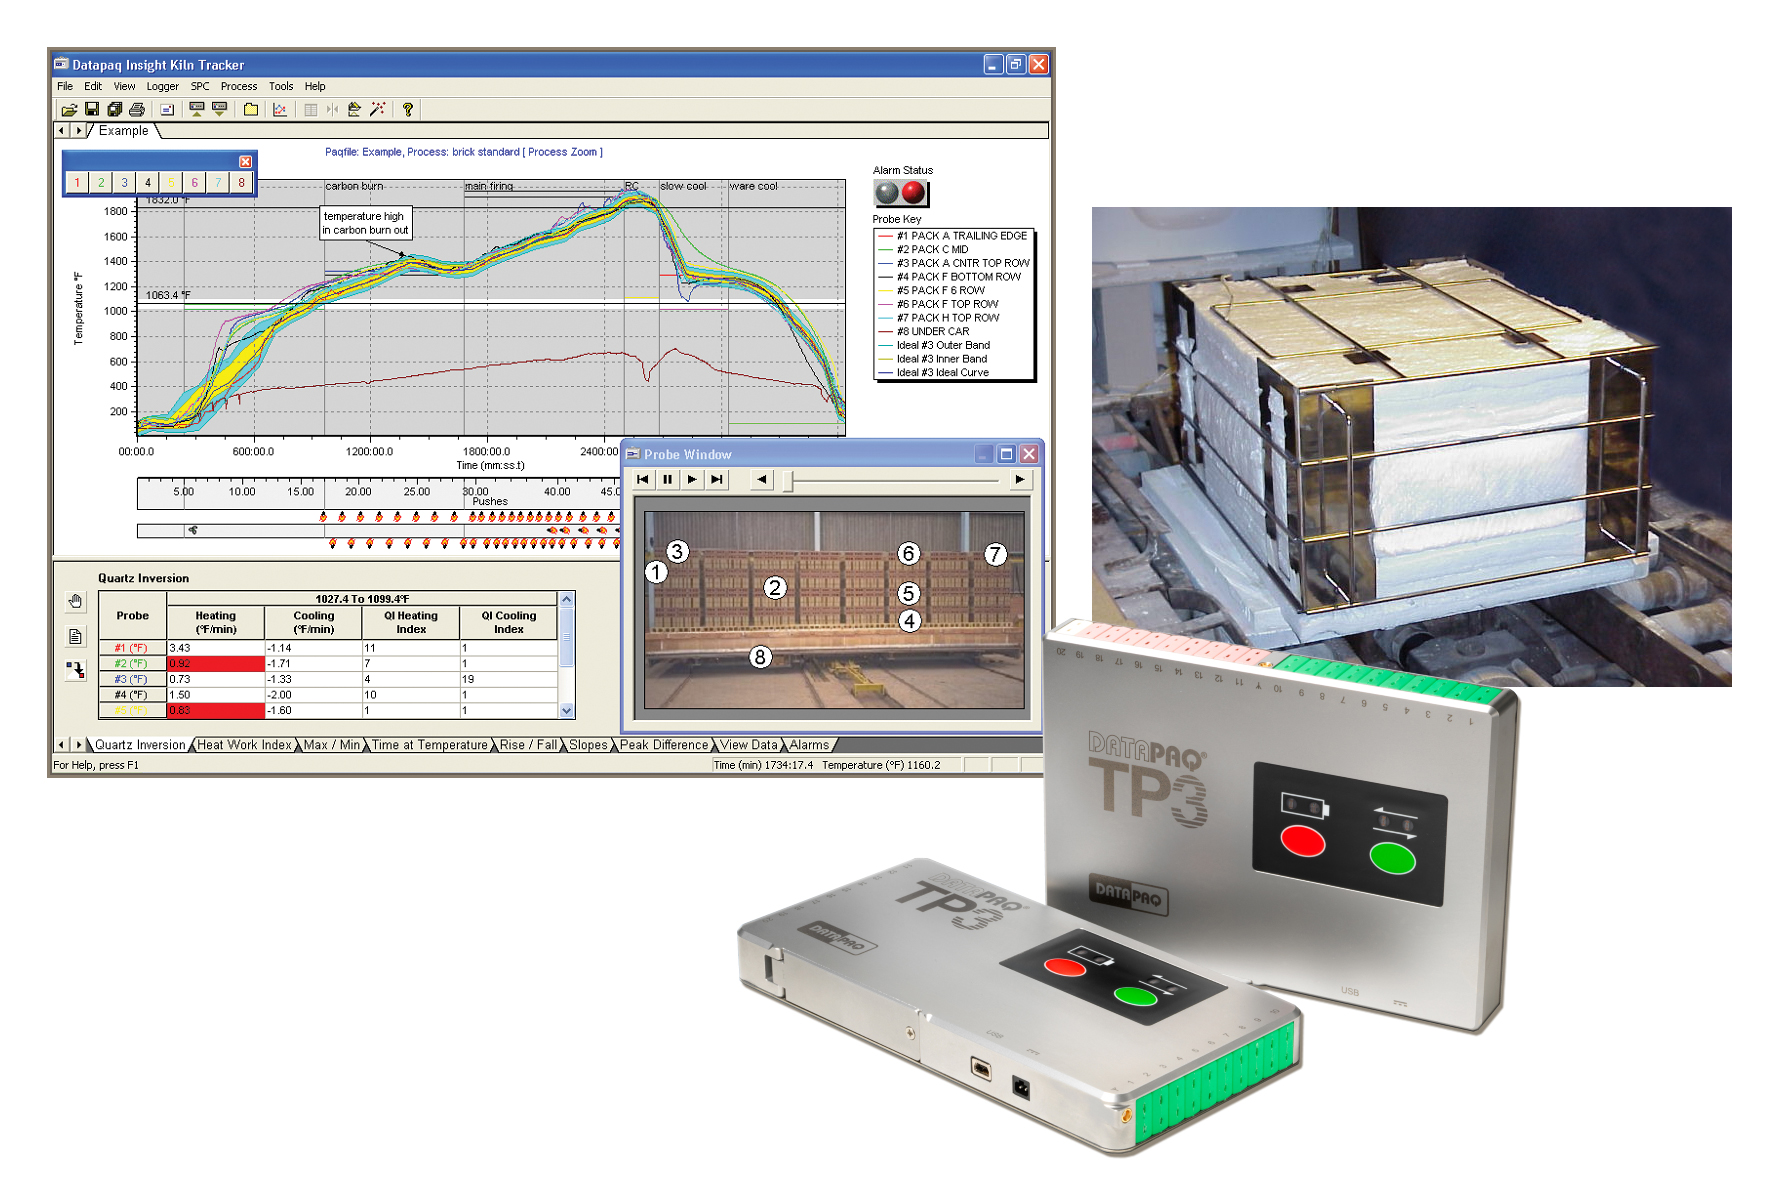 Gii Die Presse Agentur Gmbh Genuine Industry Information Hot Water System Further Fluke Thermal Imager On Wiring Diagram For Datapaq Kiln Trackers Create Complete Temperature Profiles As They Travel Through The